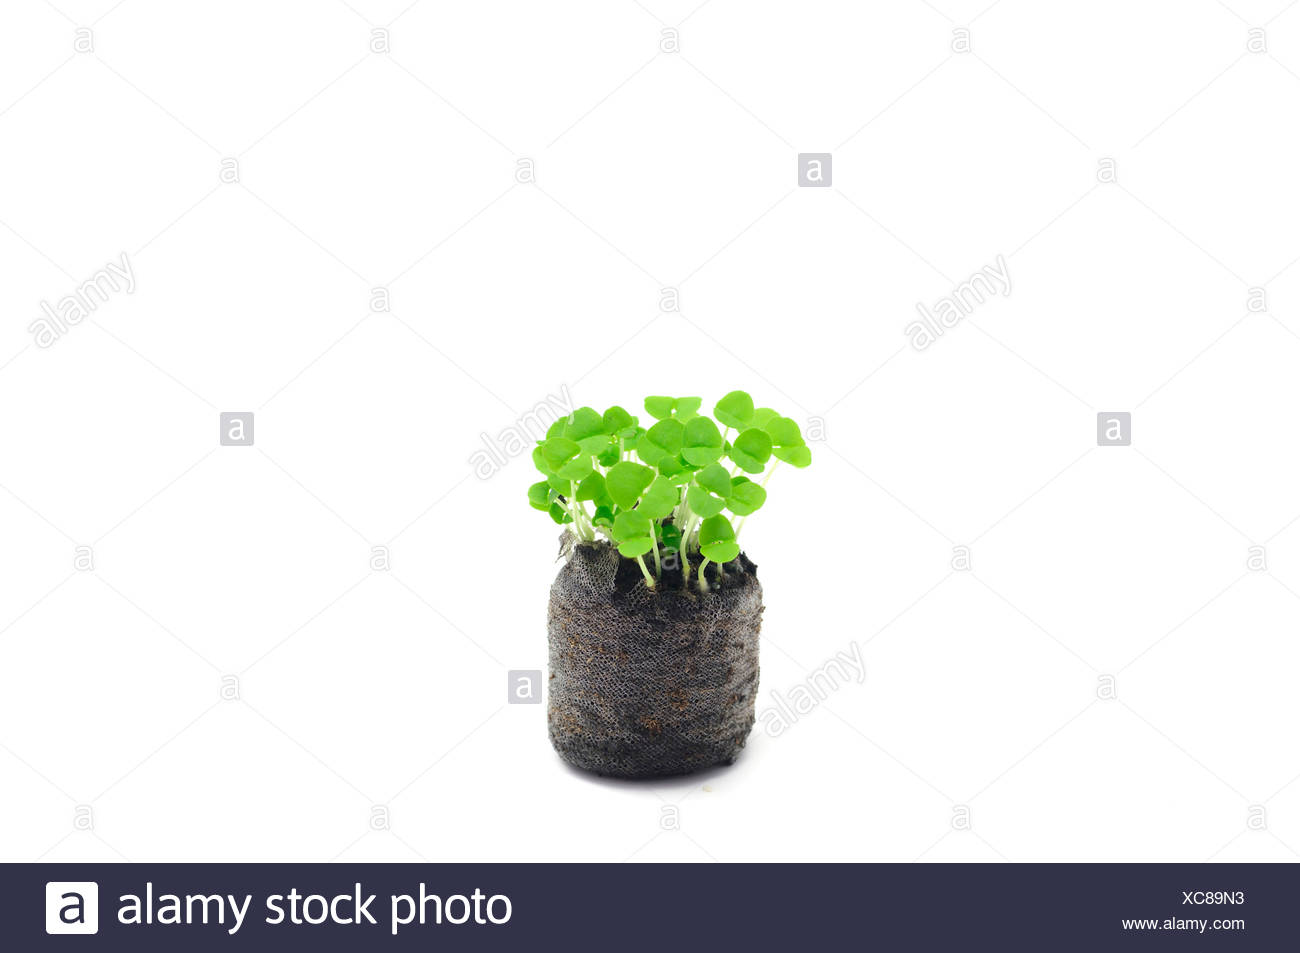 Basil seedlings - Stock Image